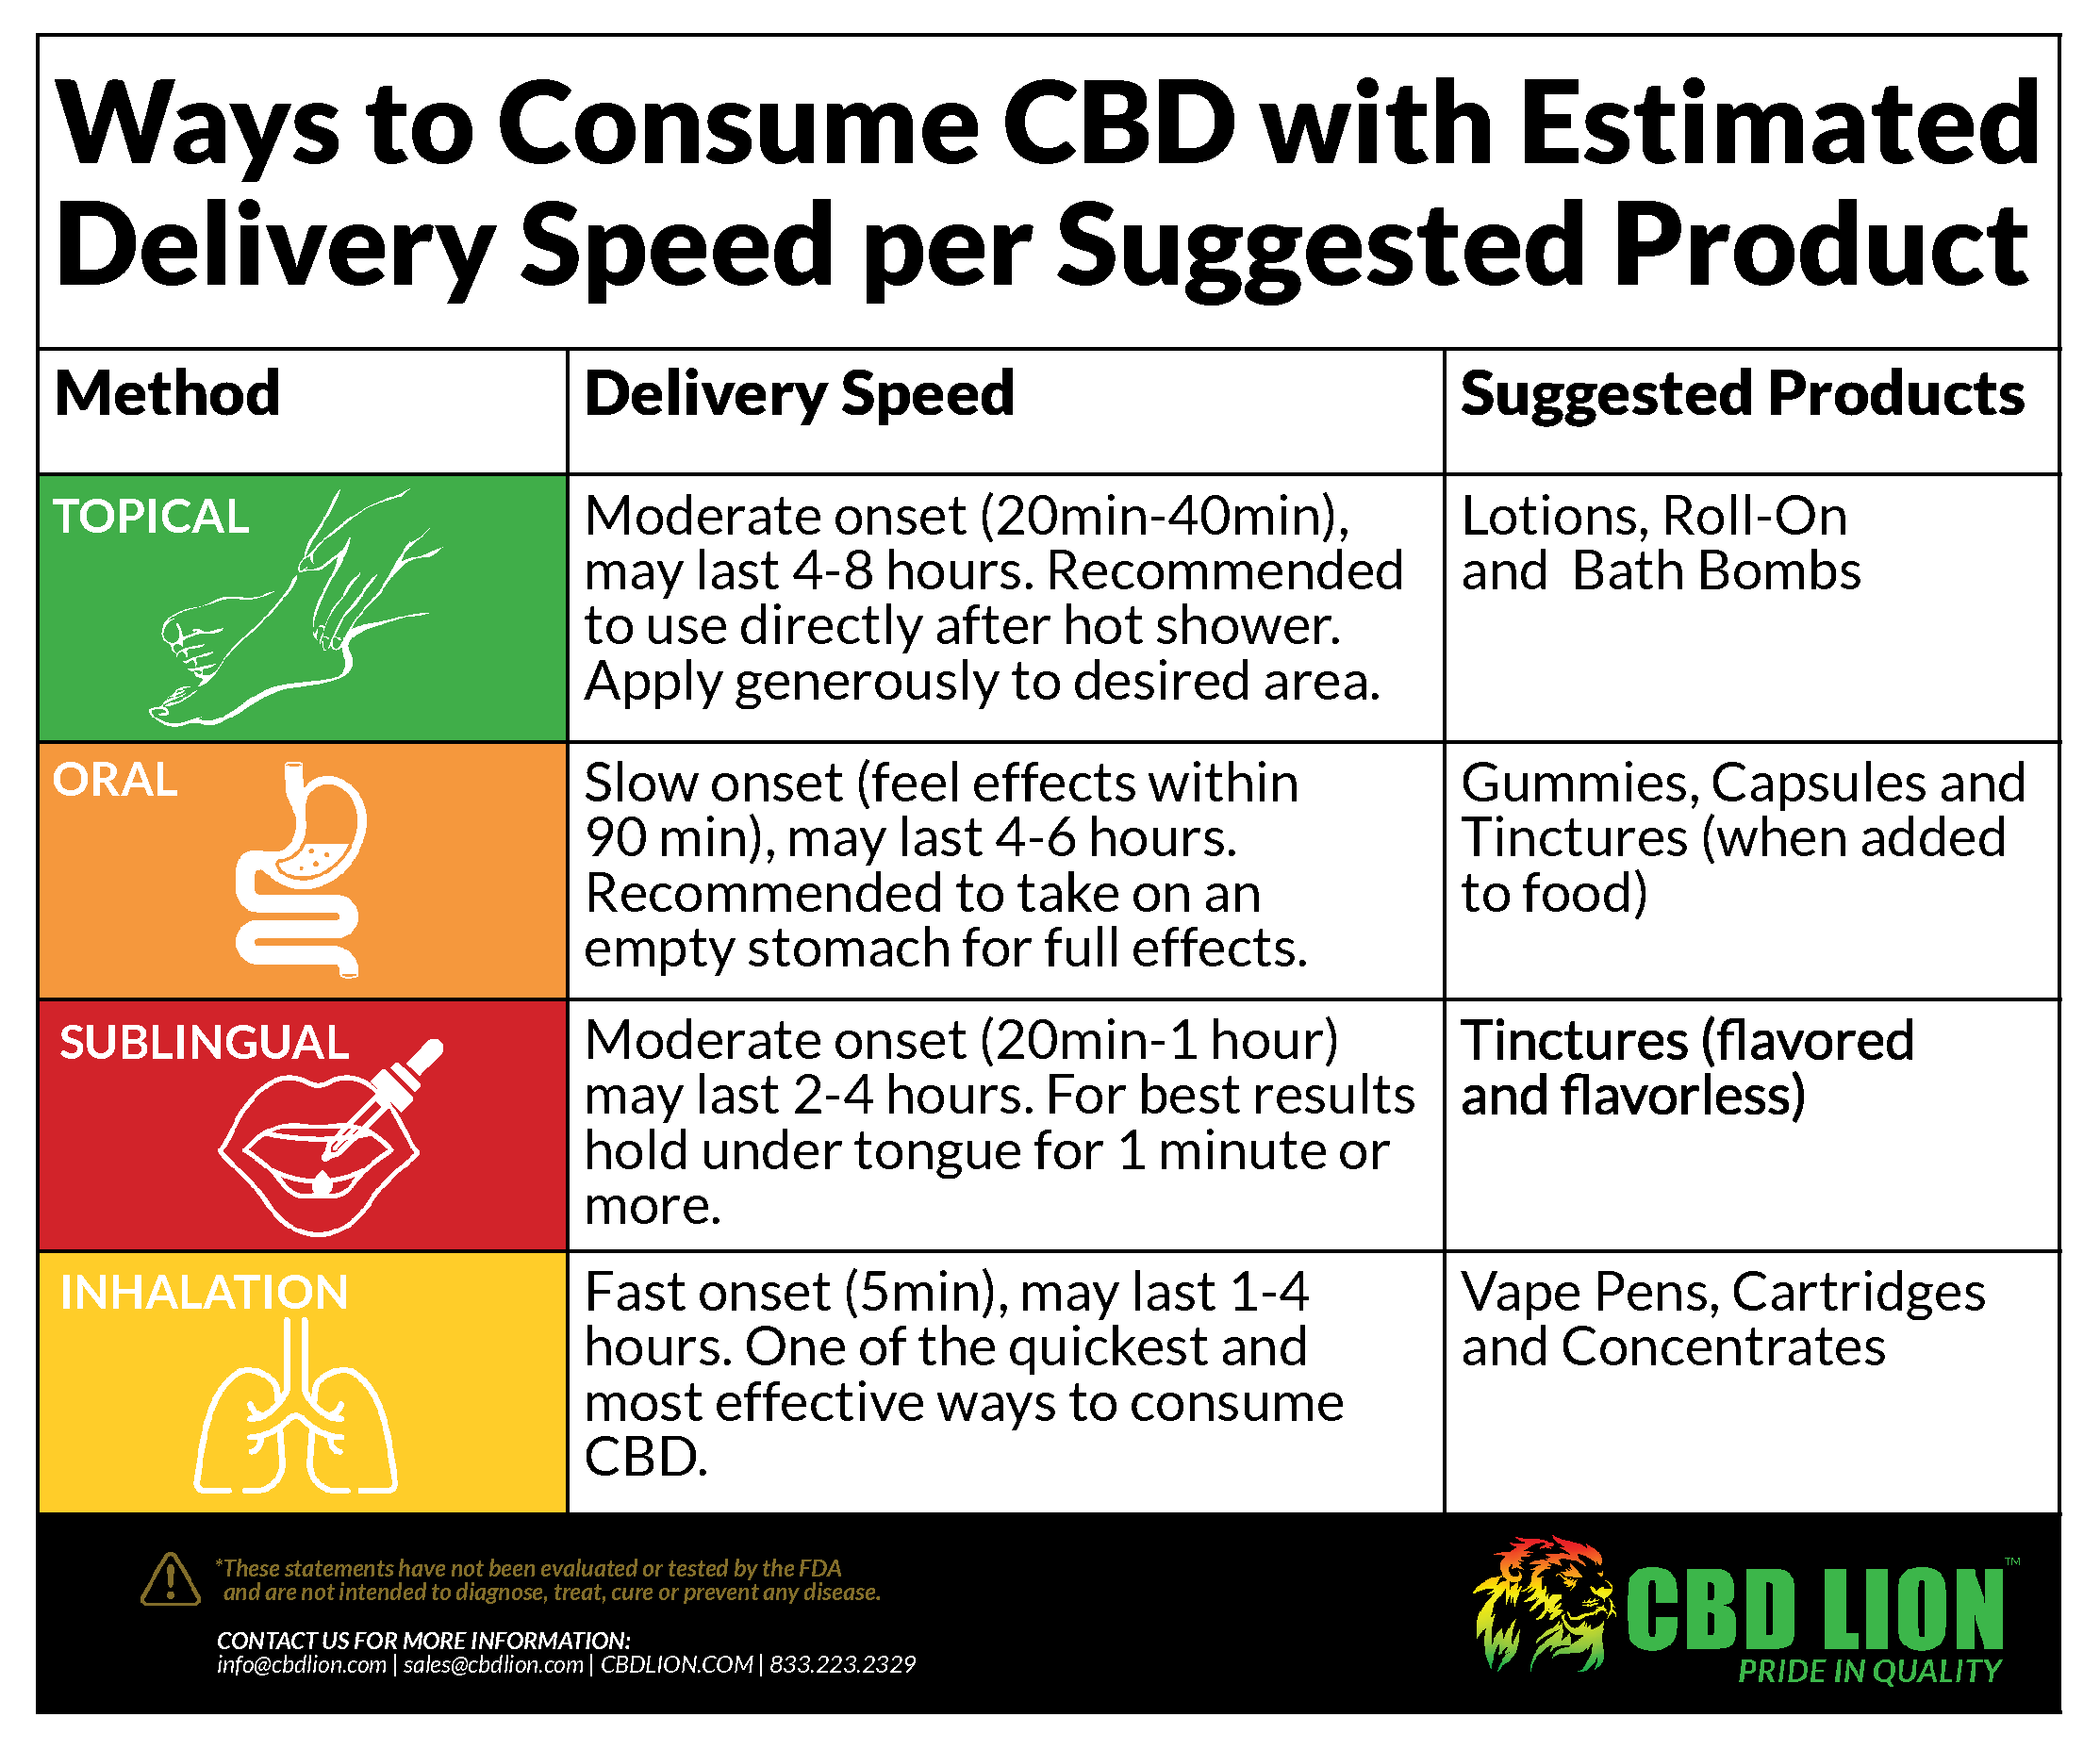 Delivery methods of CBD